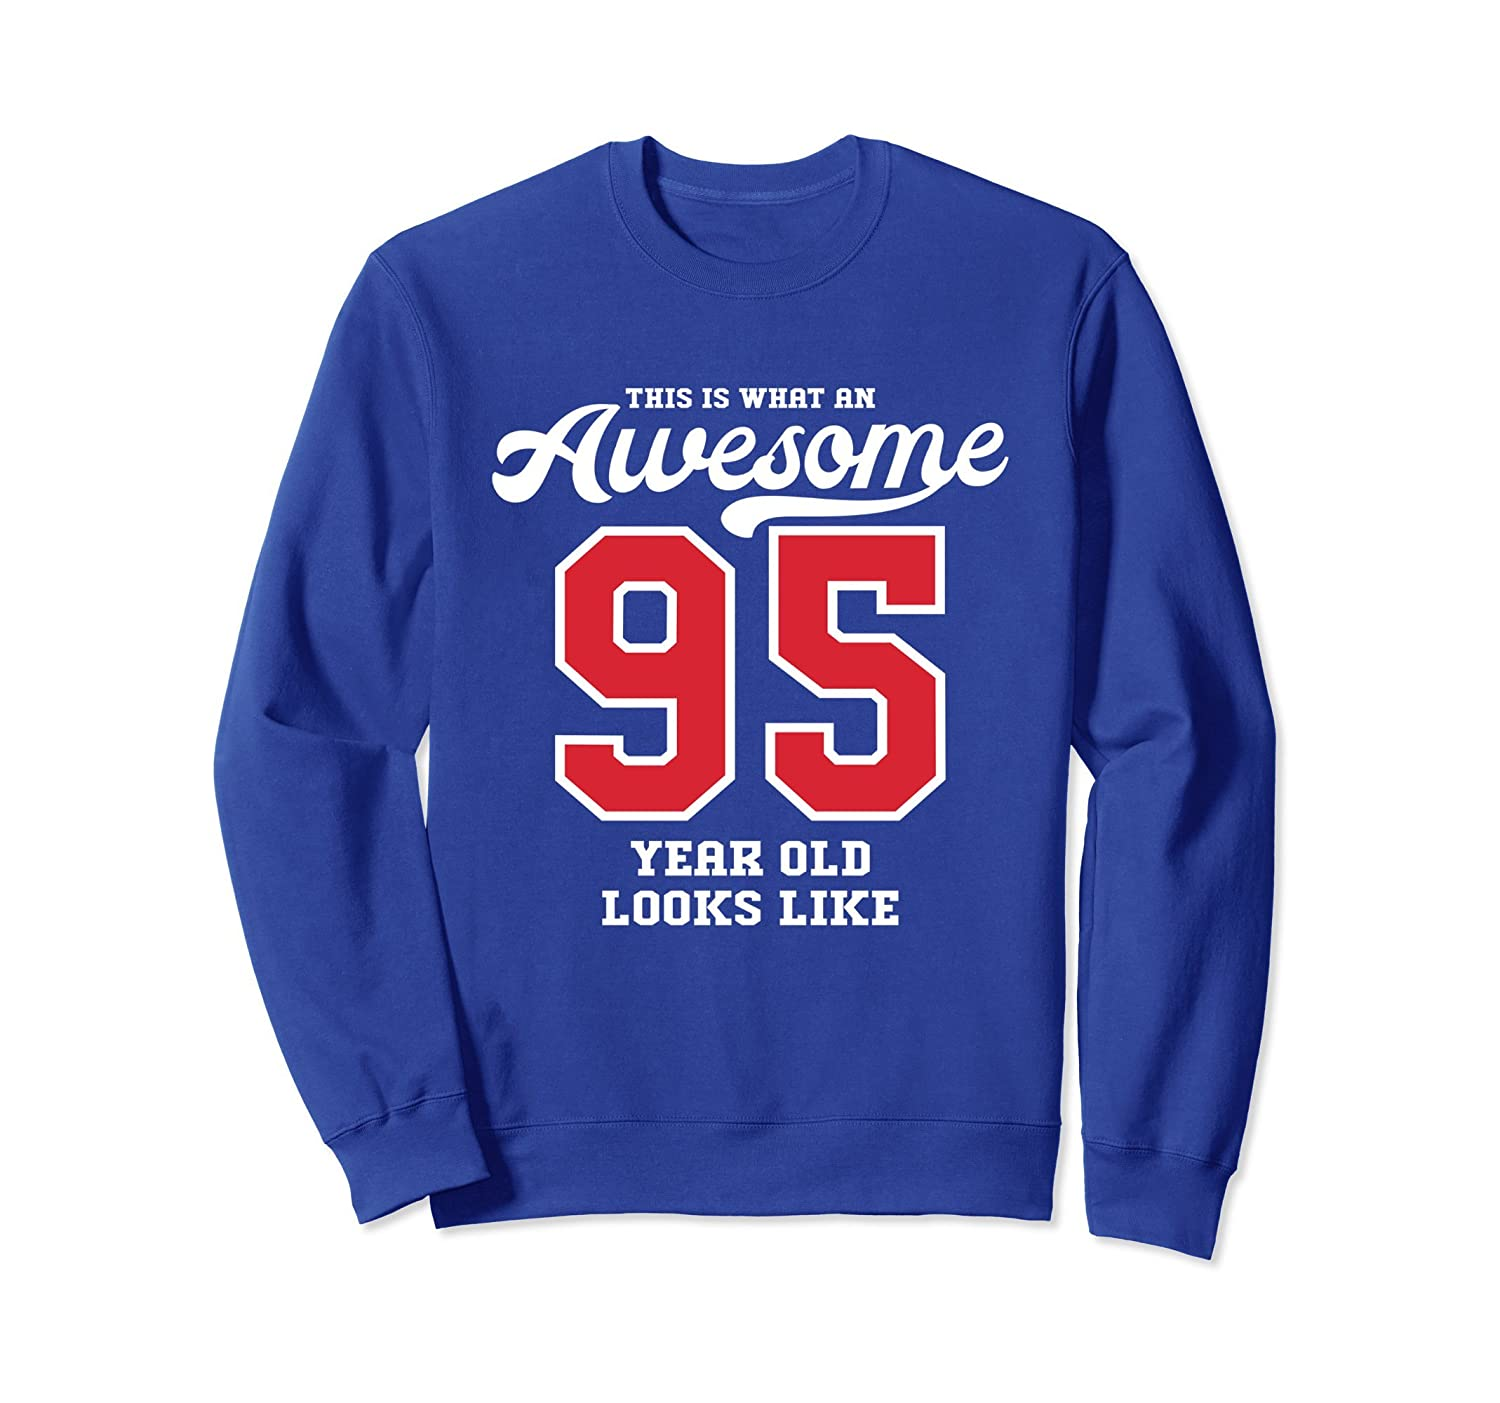 95th Birthday Gift Sweatshirt Awesome 95 Year Old-TH